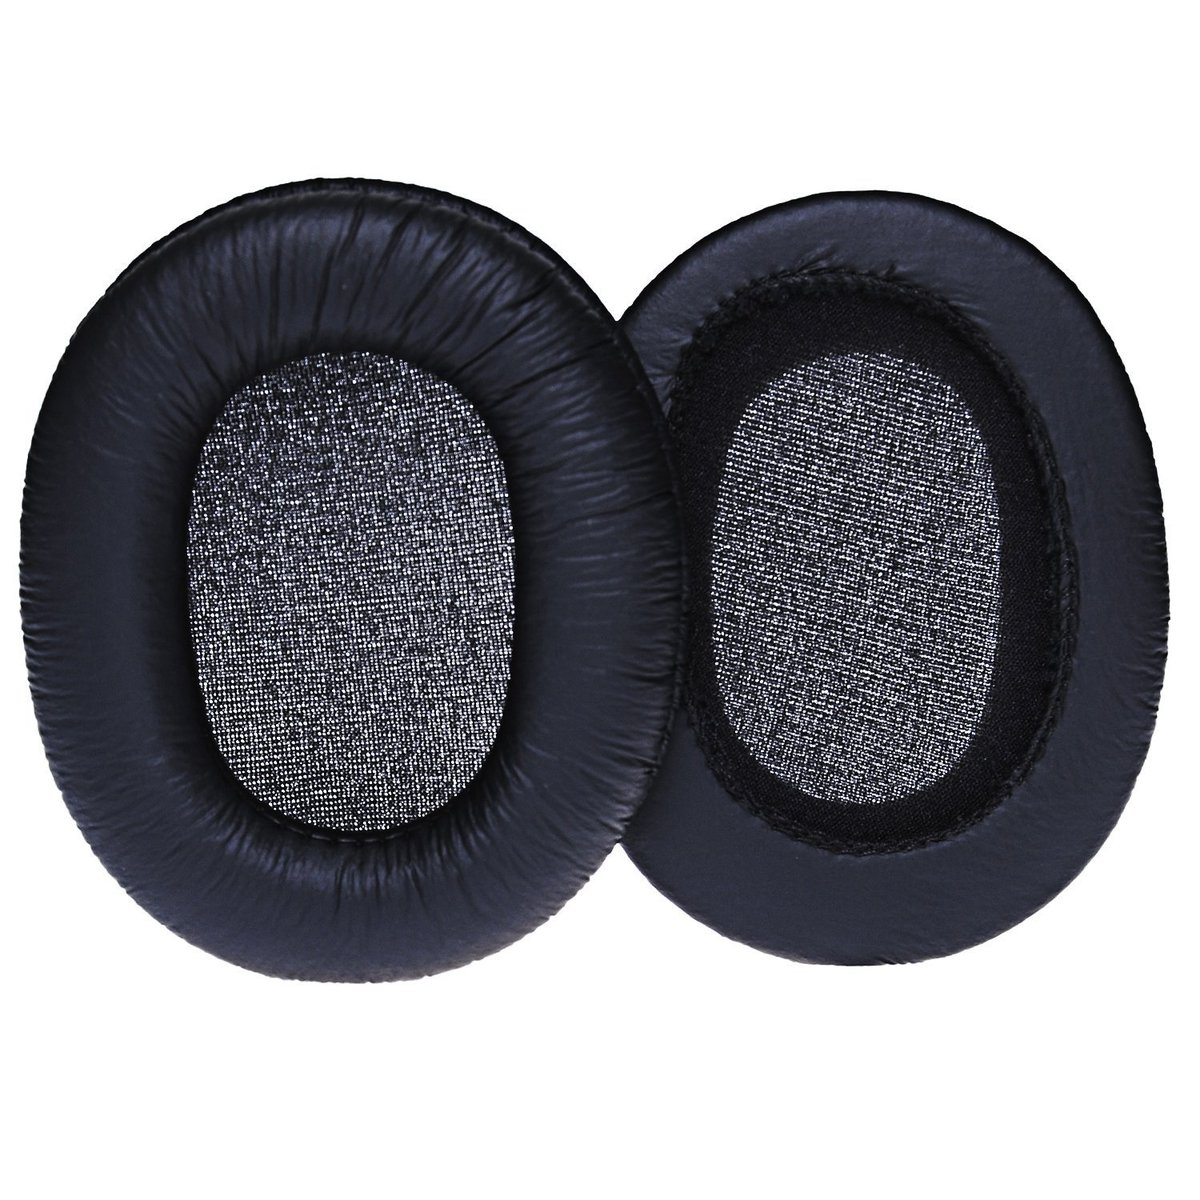 Replacement elasticity Thicken foam ear pads cushions for SONY MDR-7506 MDR-V6 MDR-900ST headphones